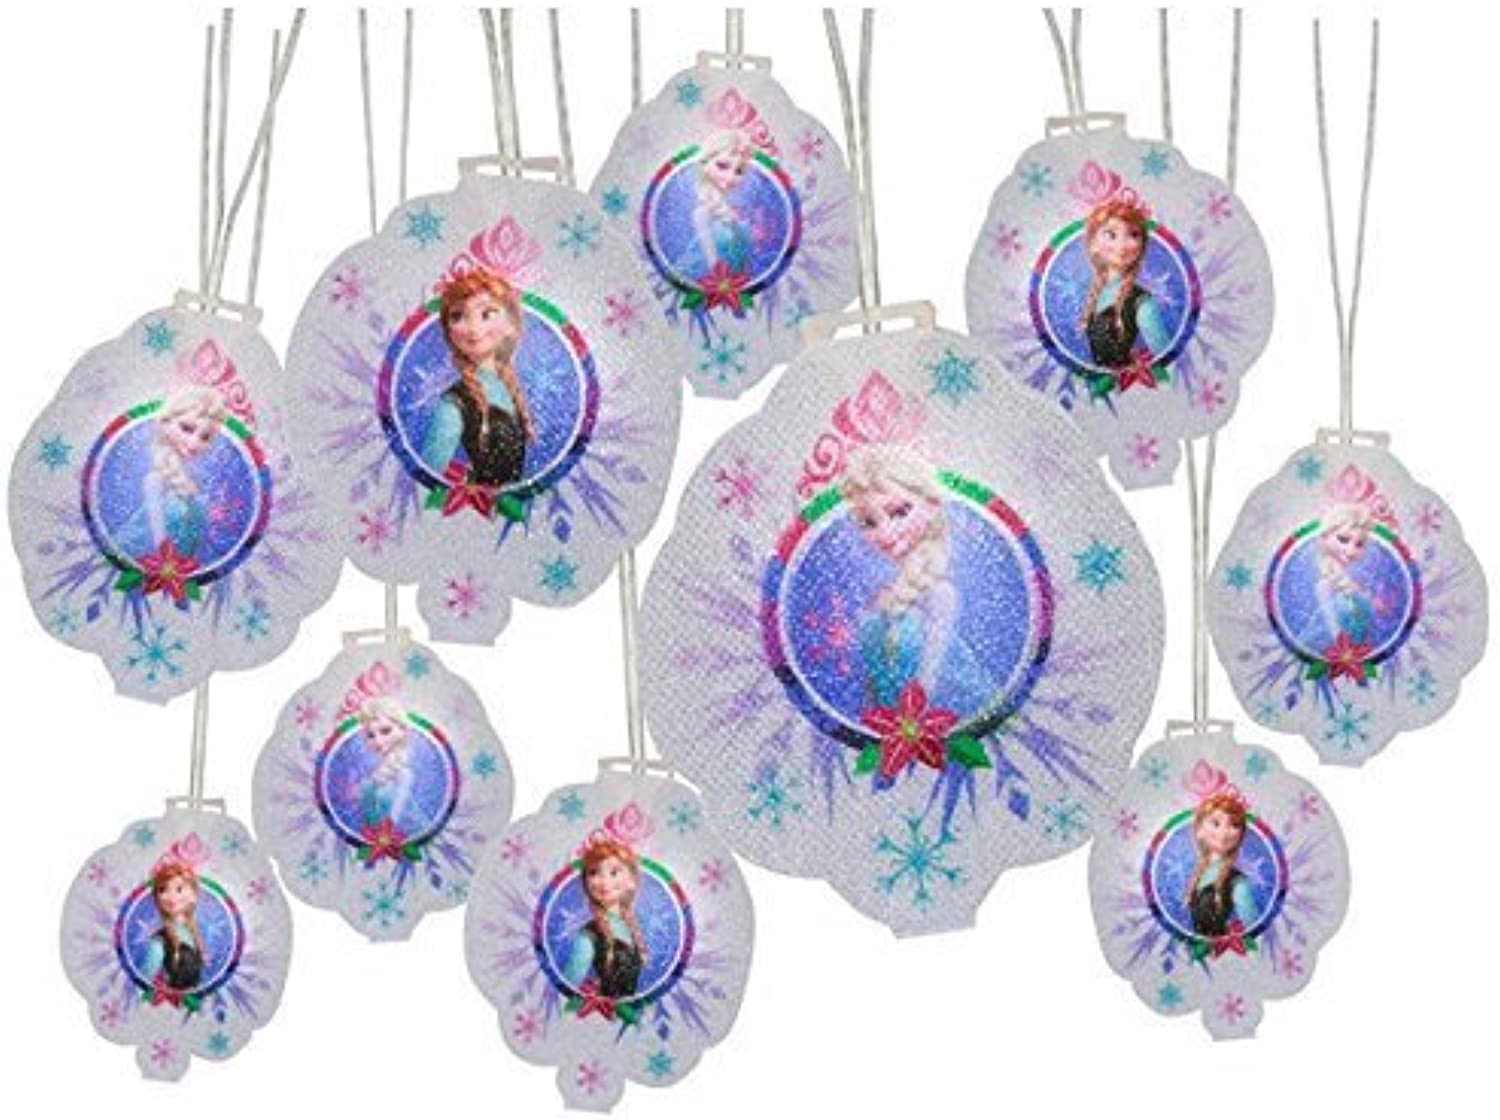 edición limitada en caliente Disney Disney Disney Frozen Holiday Lights  Elsa and Anna Holiday Light String (11.15 Ft Long) by Gemmy  El nuevo outlet de marcas online.